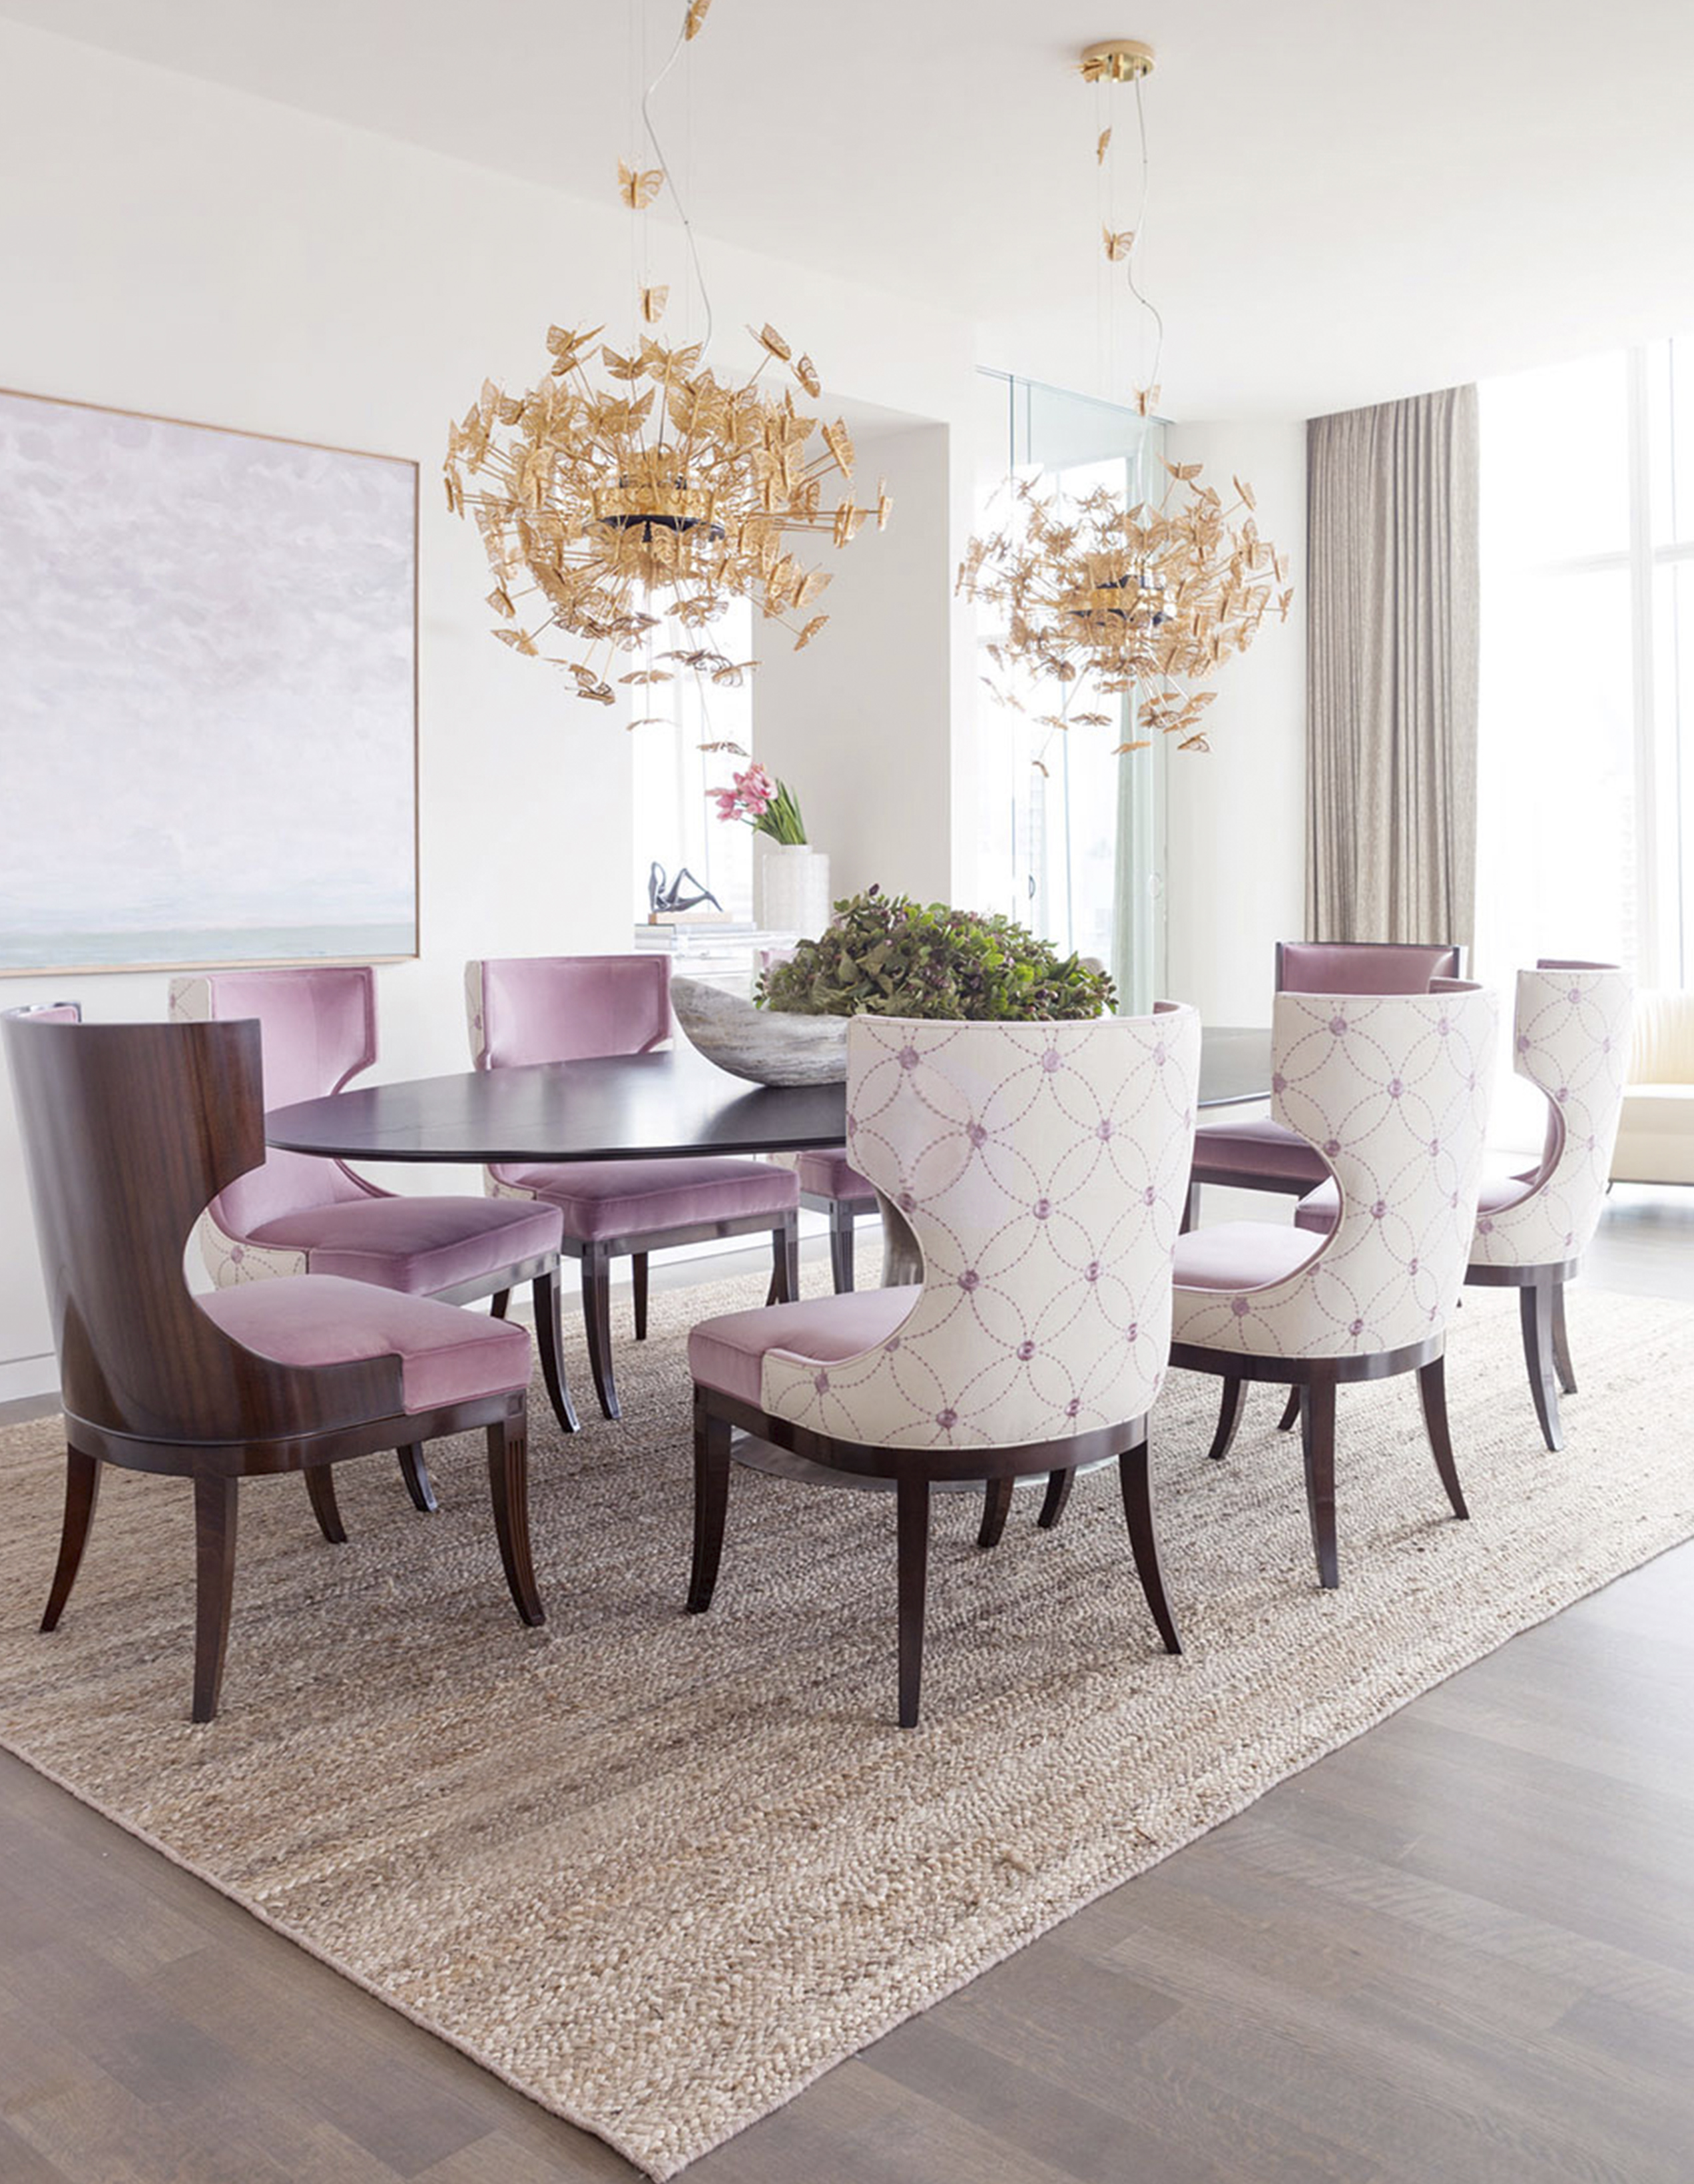 Take a Look at the Best Furniture Pieces for your Dining Room Design